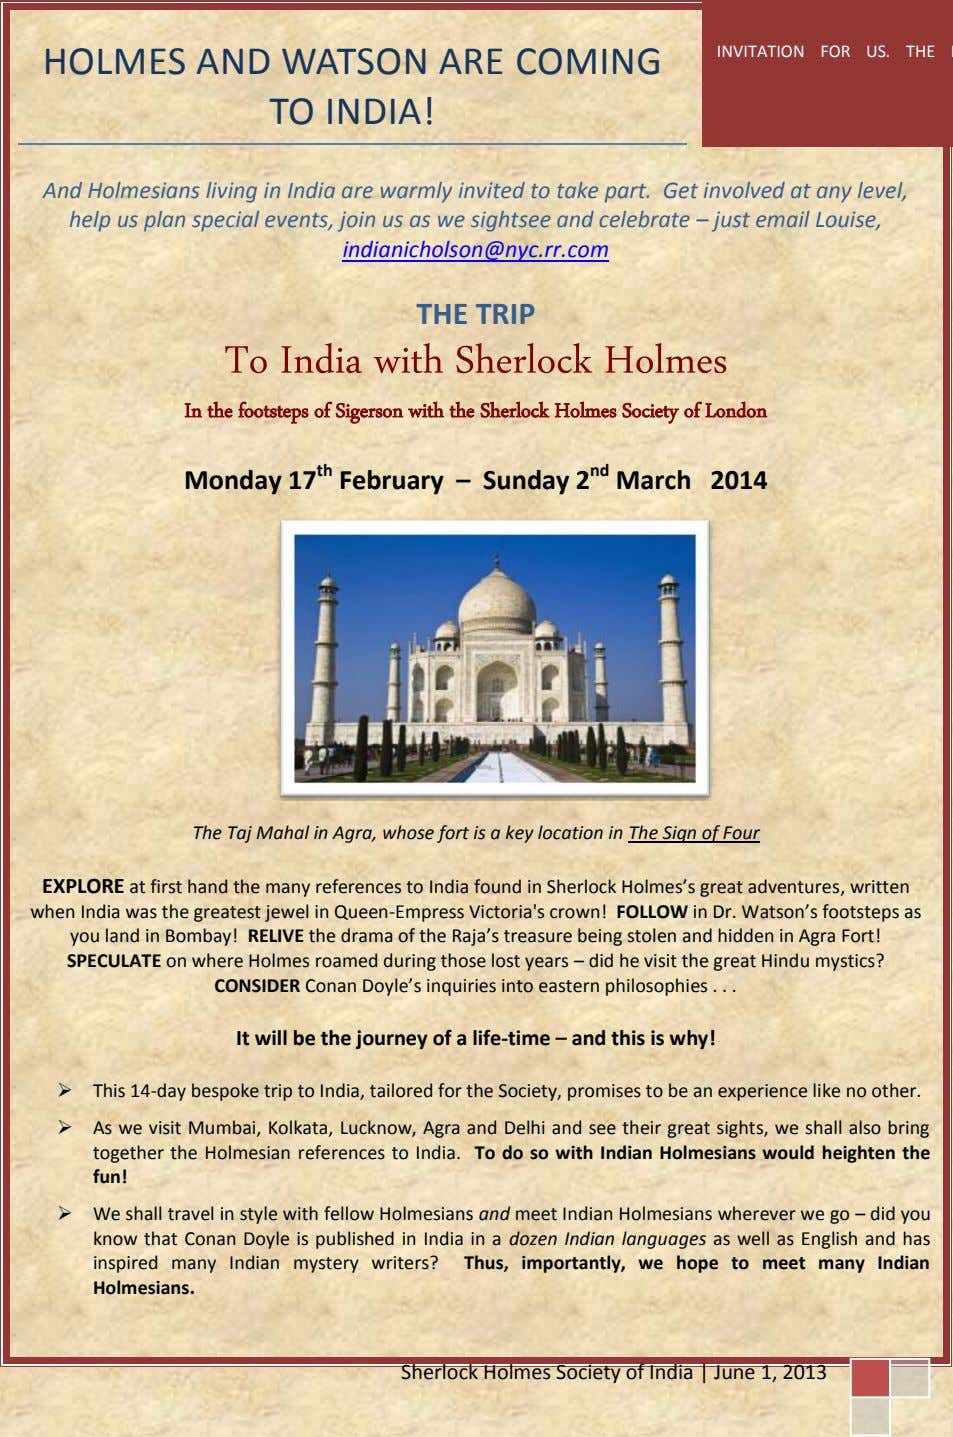 INVITATION FOR US. THE HOLMES AND WATSON ARE COMING TO INDIA! And Holmesians living in